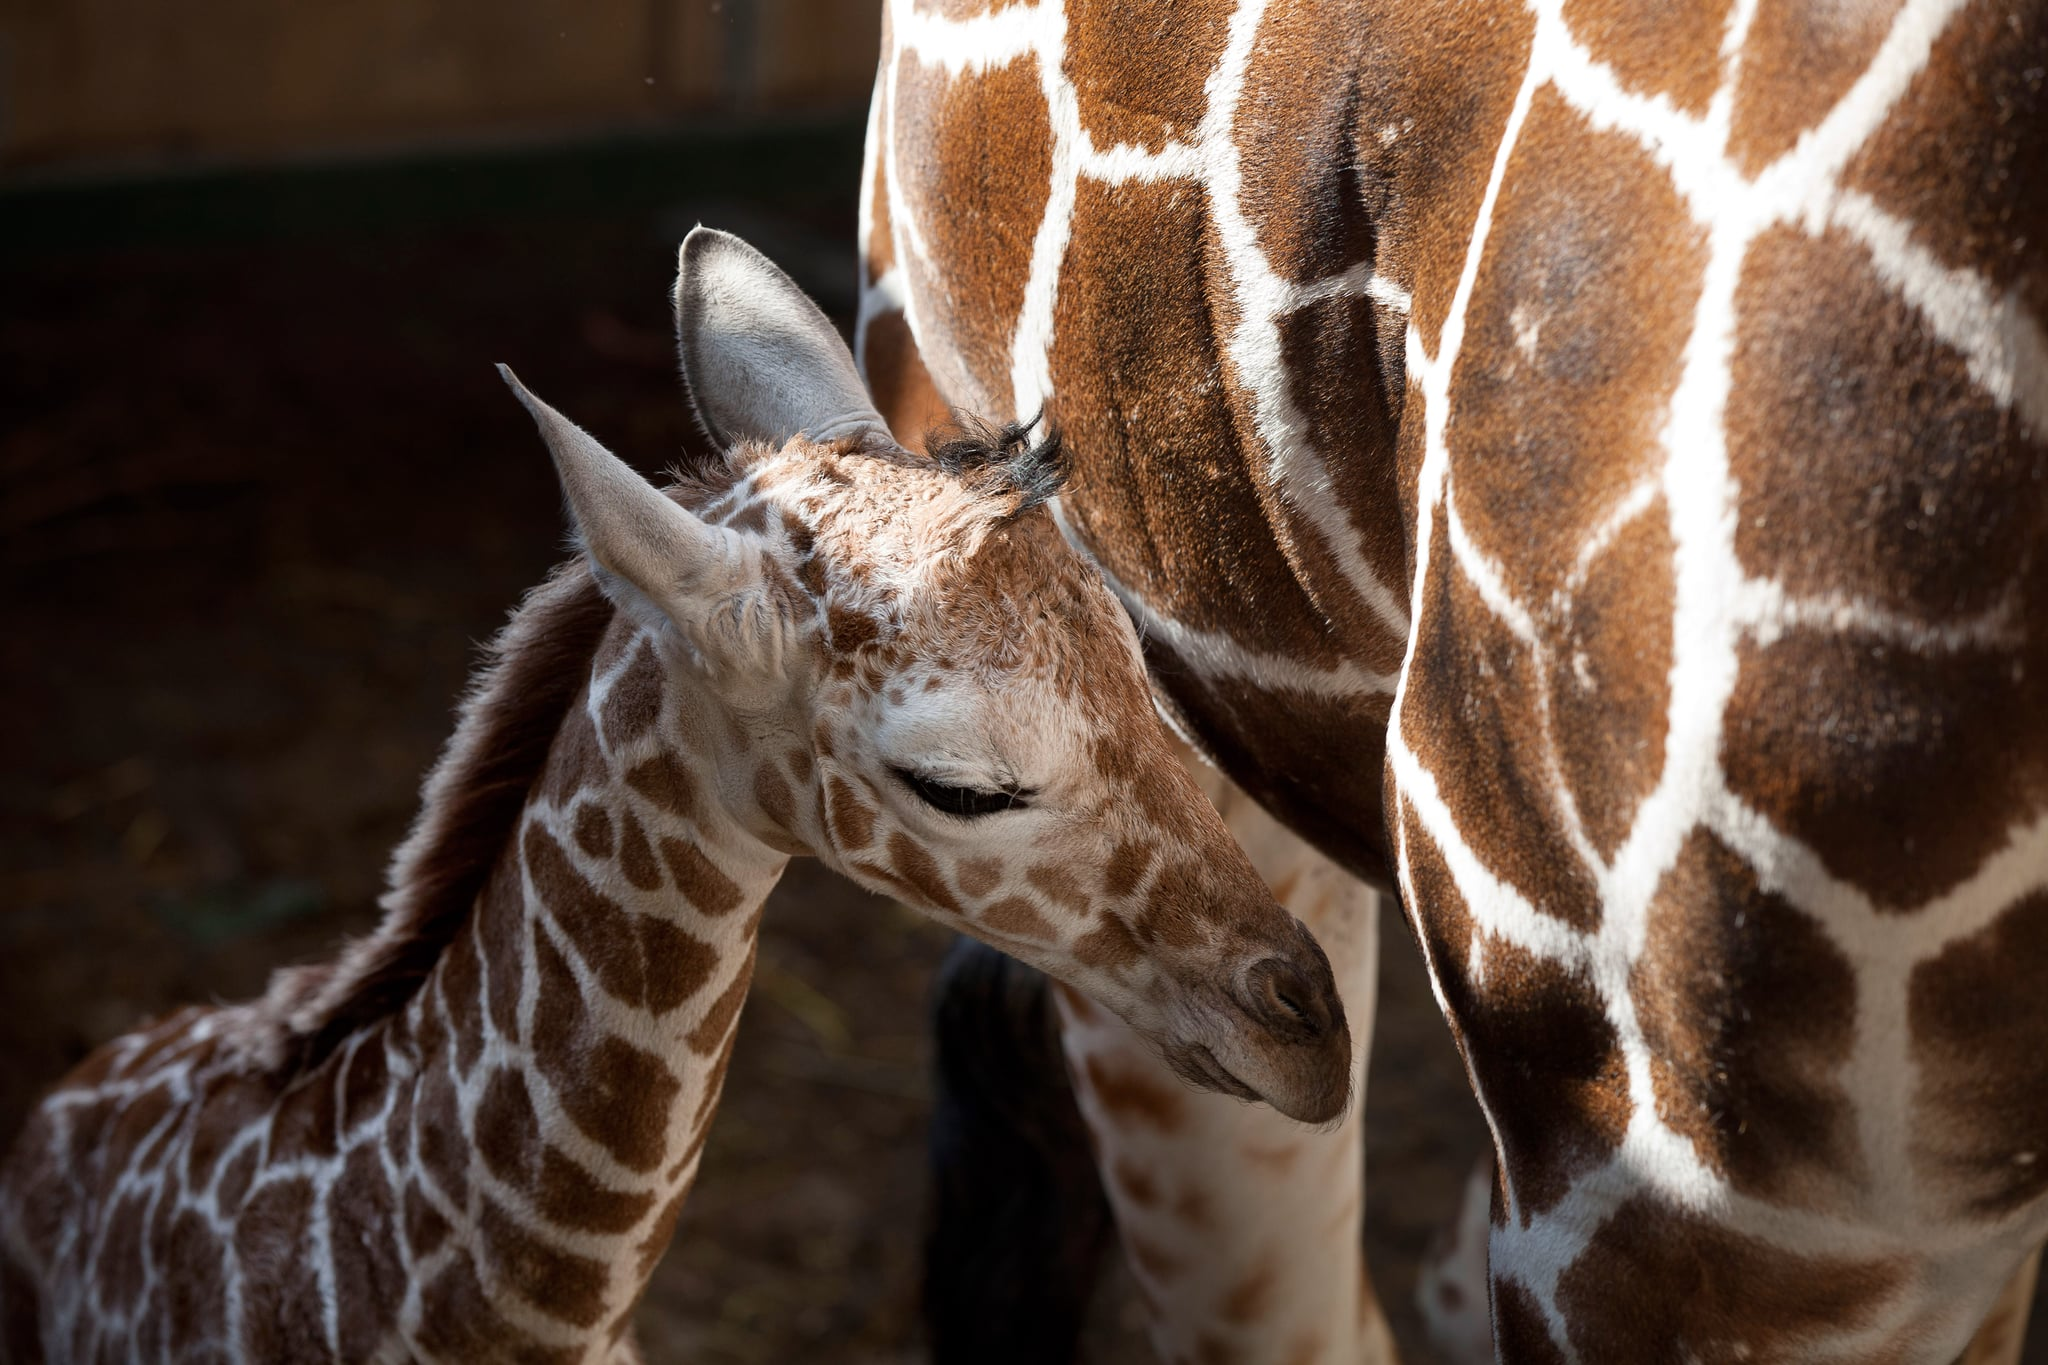 The scientific name for a giraffe is camelopardalis, which means a mix between a camel and a leopard. The ancient Romans and Greeks thought that was what a giraffe was.